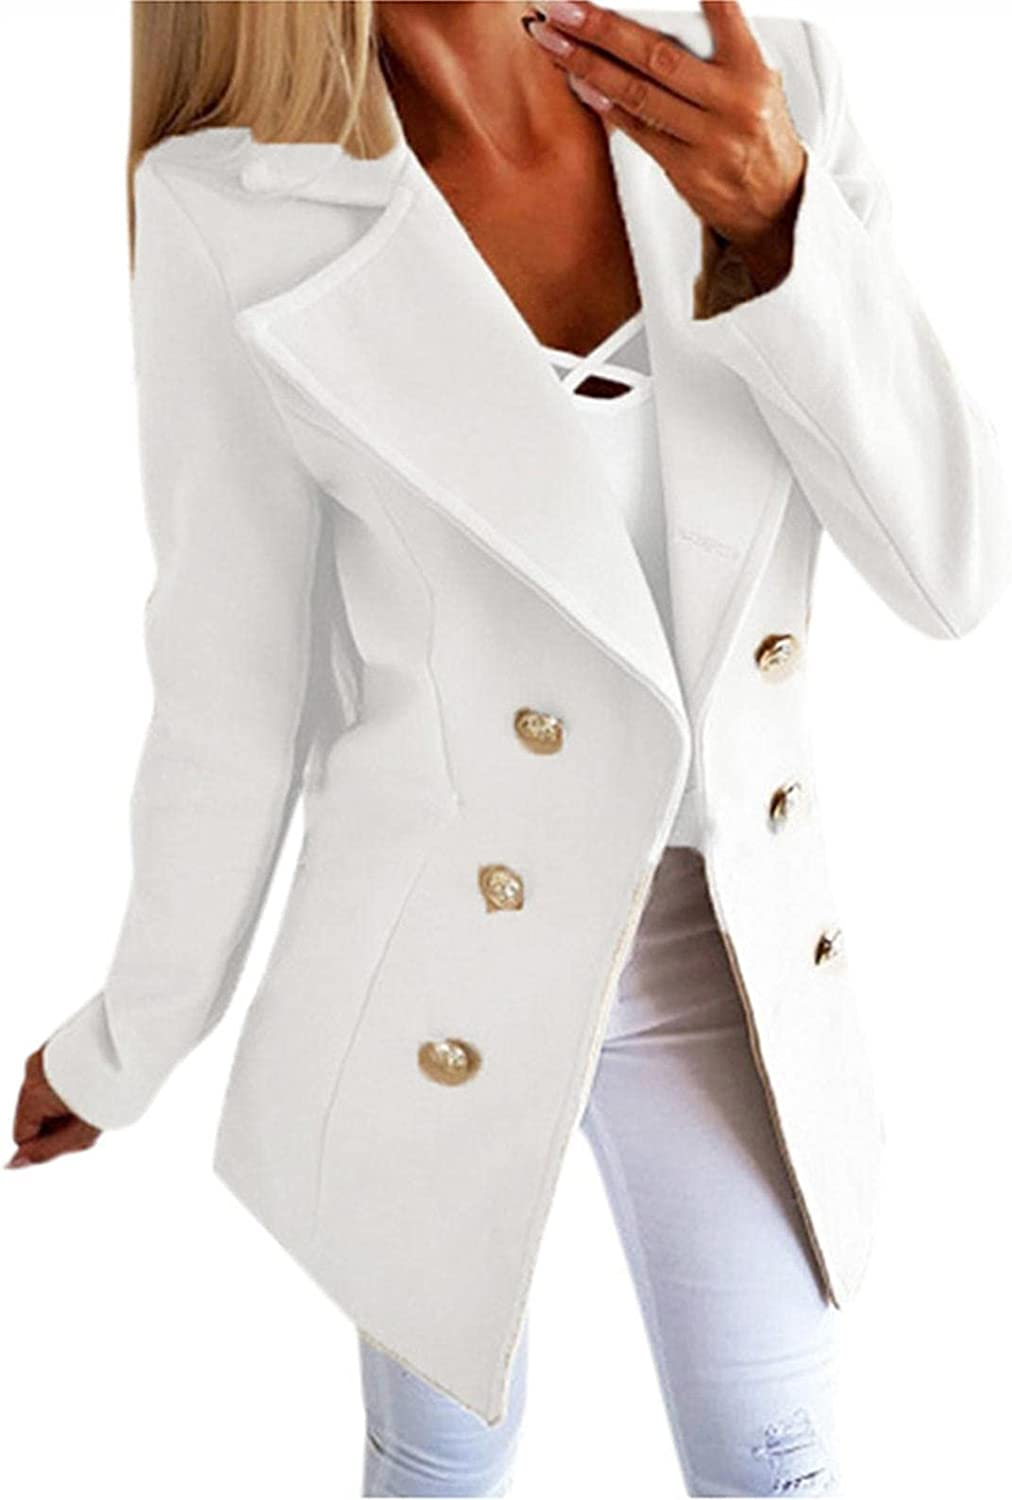 LEIYAN Fashion Trench Coat for Women Casual Slim Fit Double-Breasted Buttons Work Office Windbreaker Jackets Plus Size